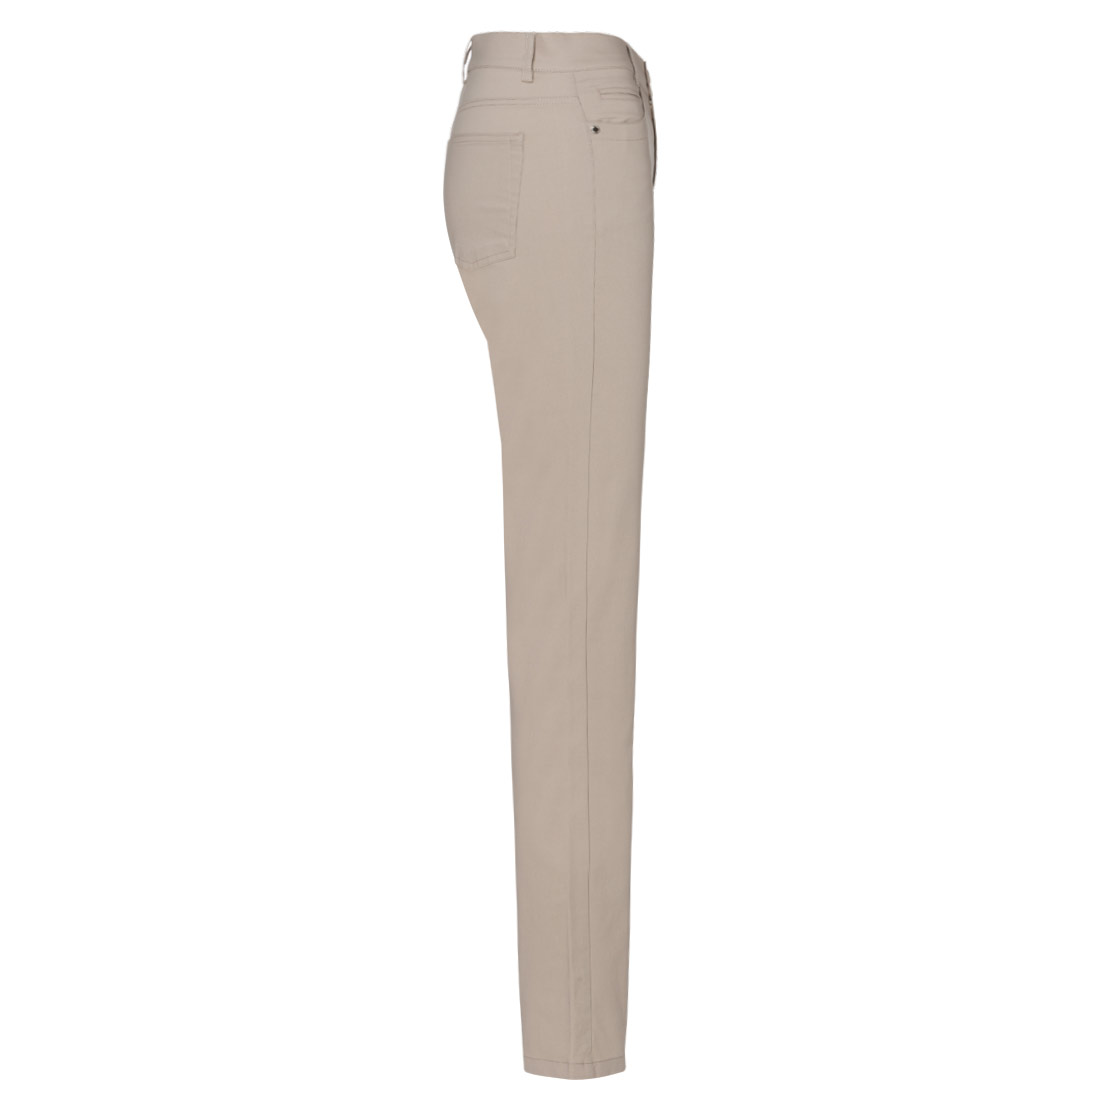 Damen Golfhose aus feinem Baumwoll-Mix in Slim Fit